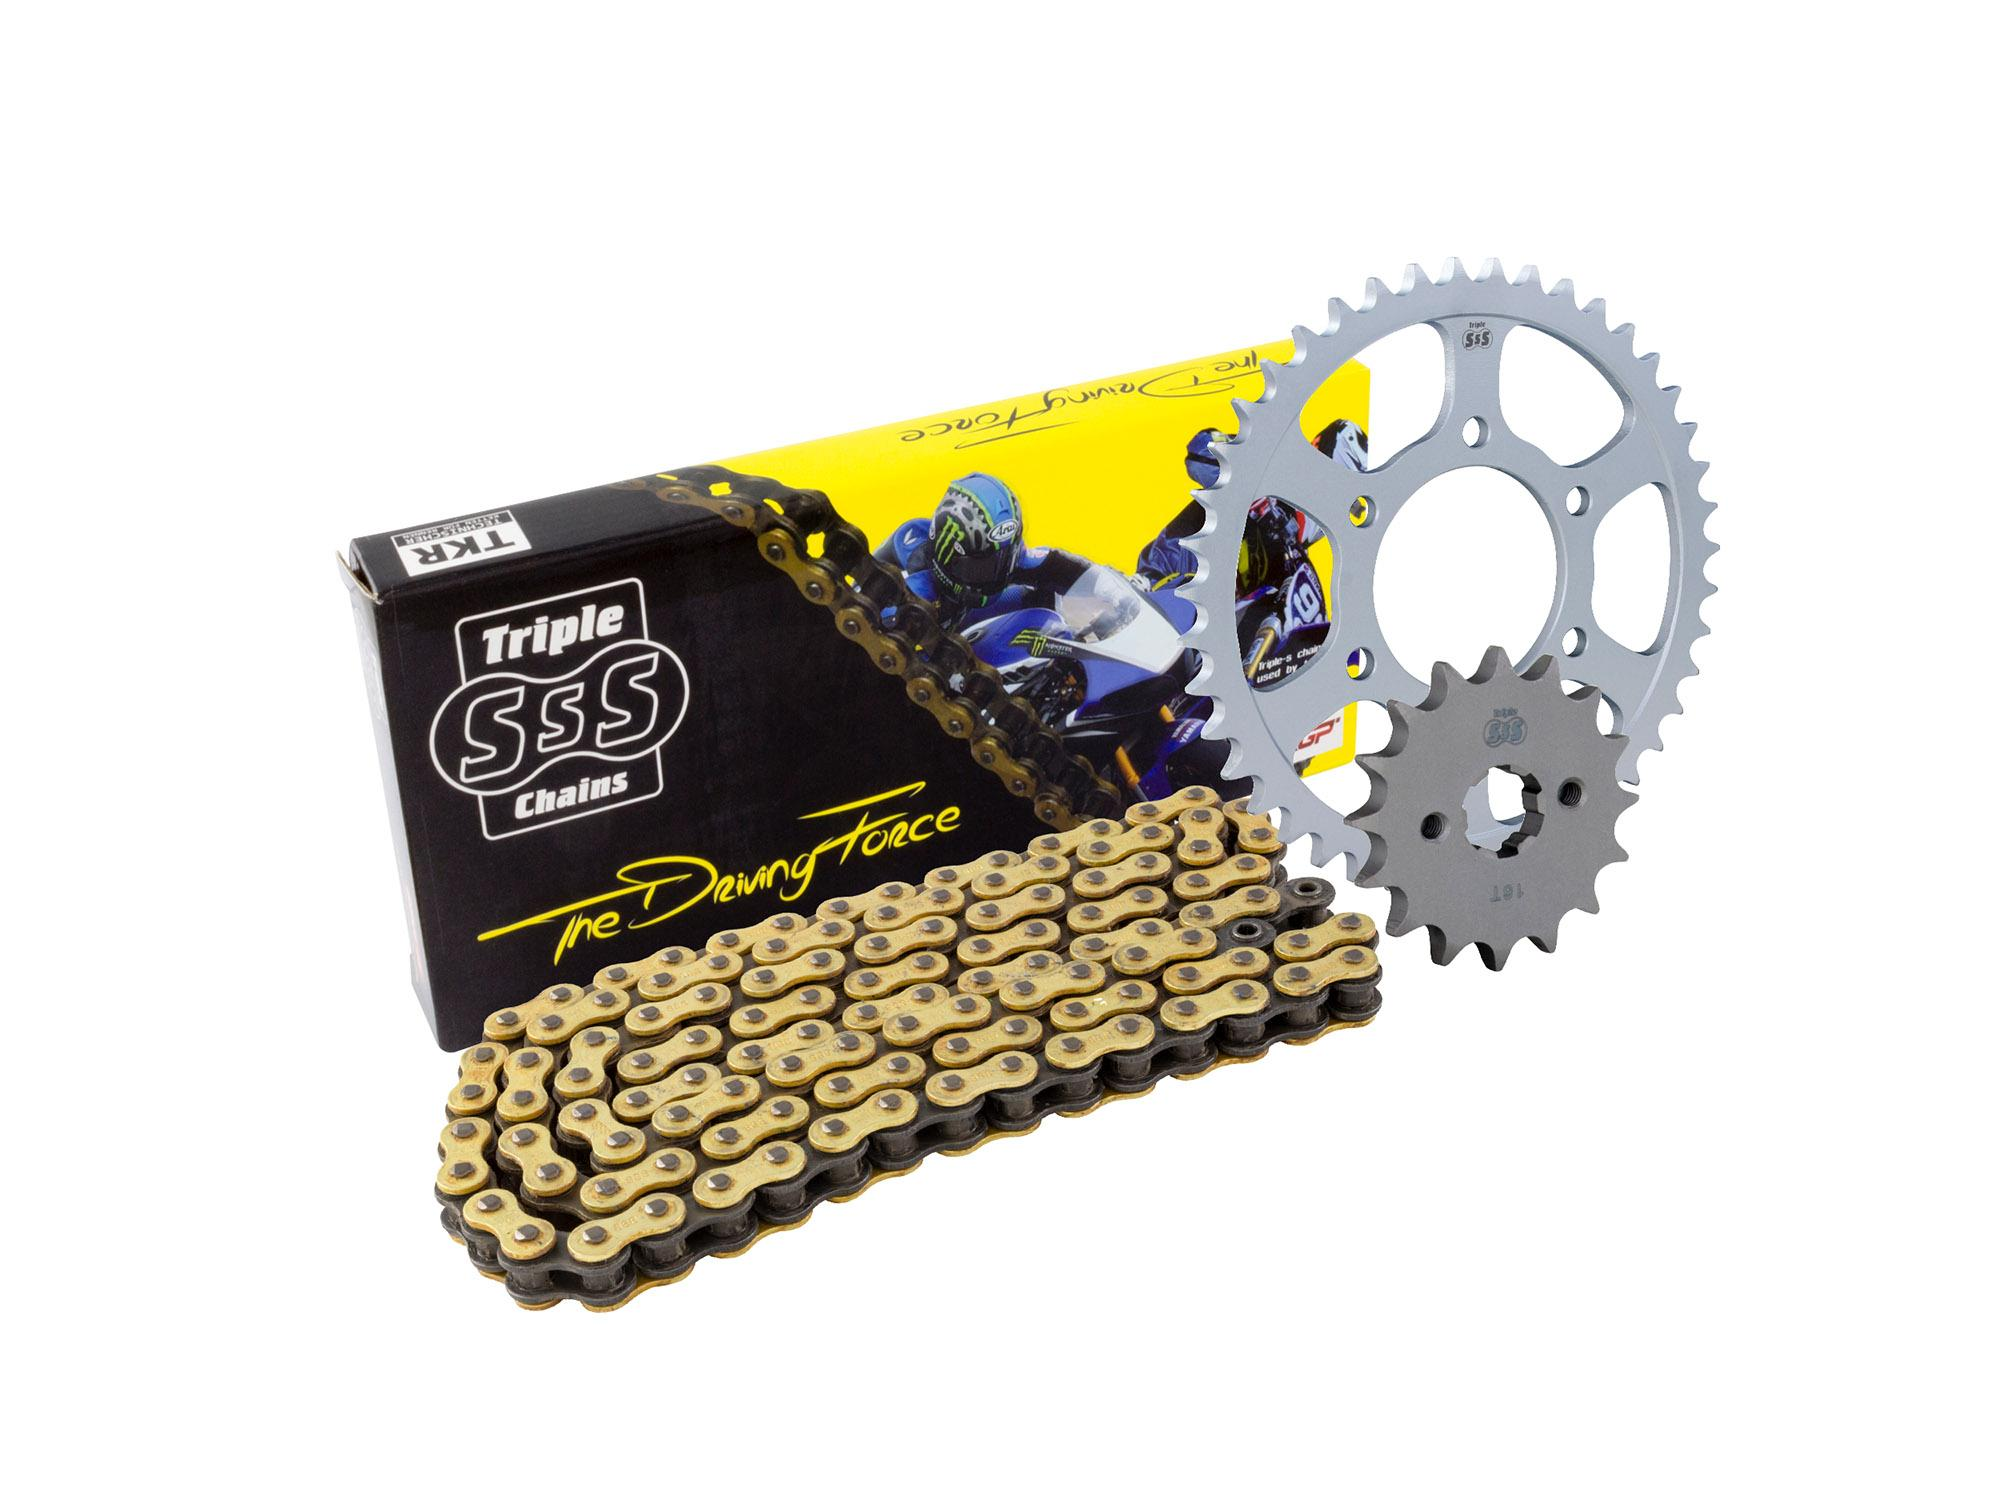 Honda CBF125 09-10 Chain & Sprocket Kit: 16T Front, 43T Rear, HD O-Ring Gold Chain 530H 120Link